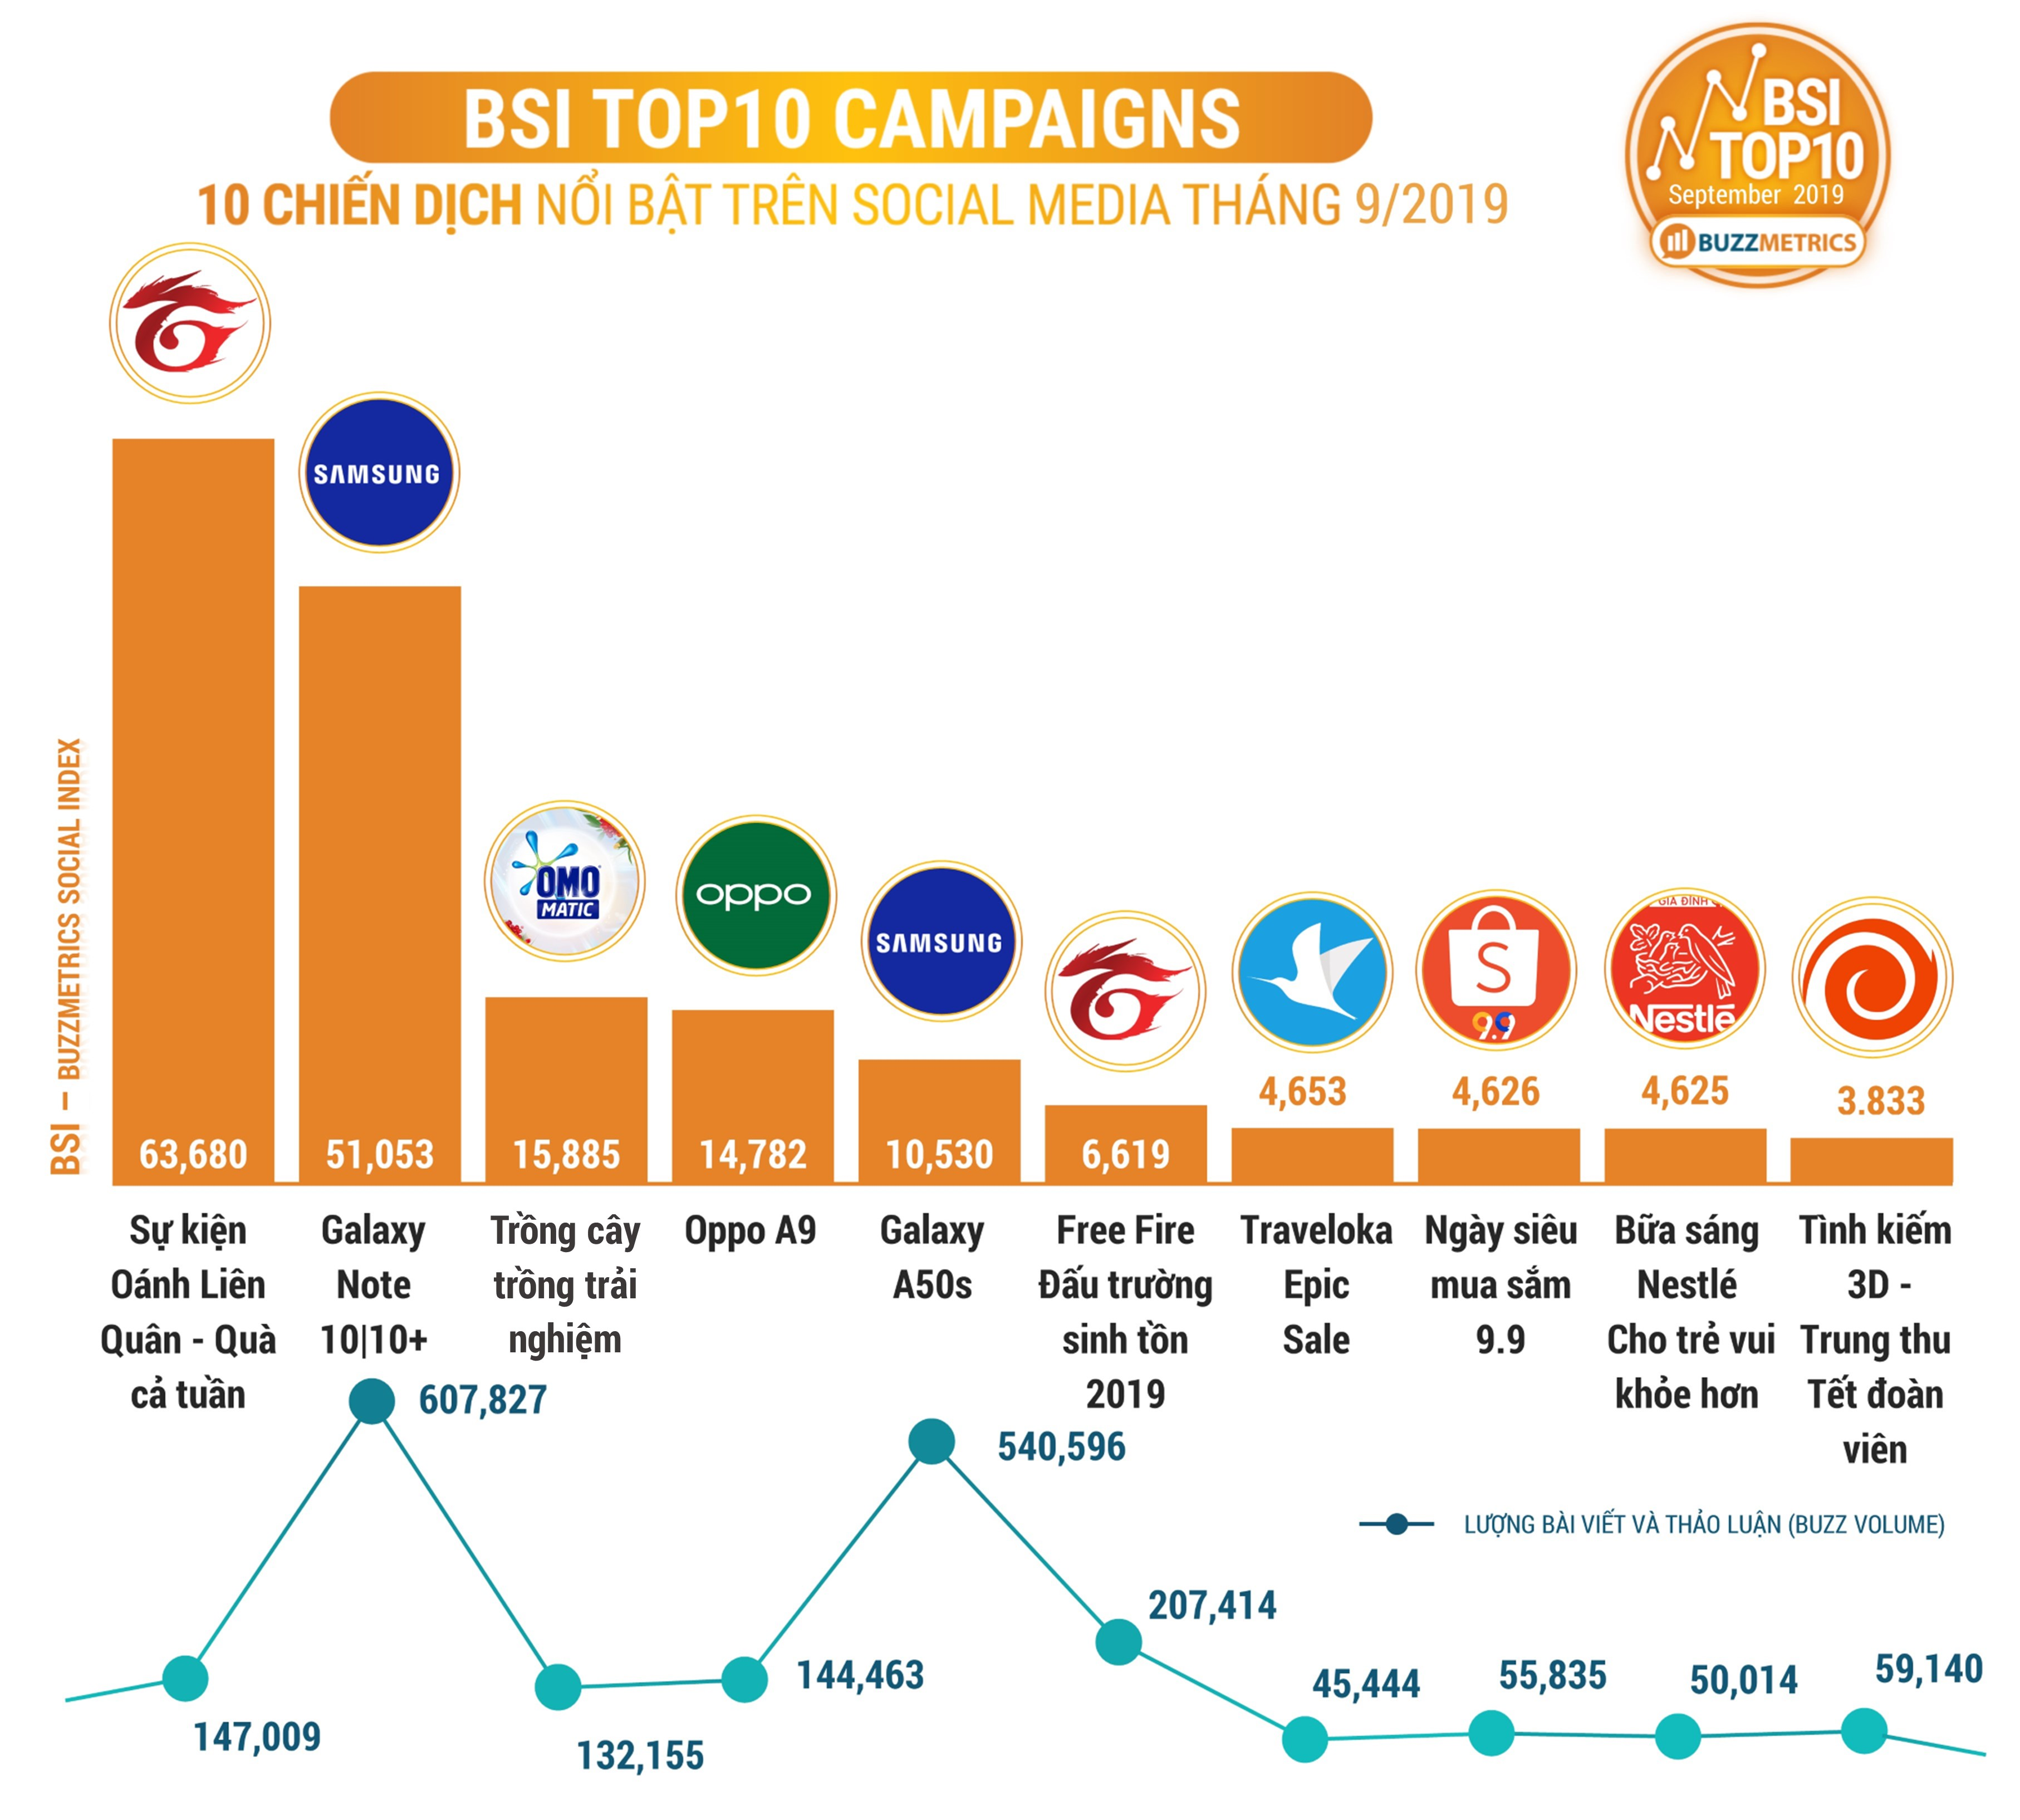 BSI Top10 CAMPAIGNS 09/2019 COVER